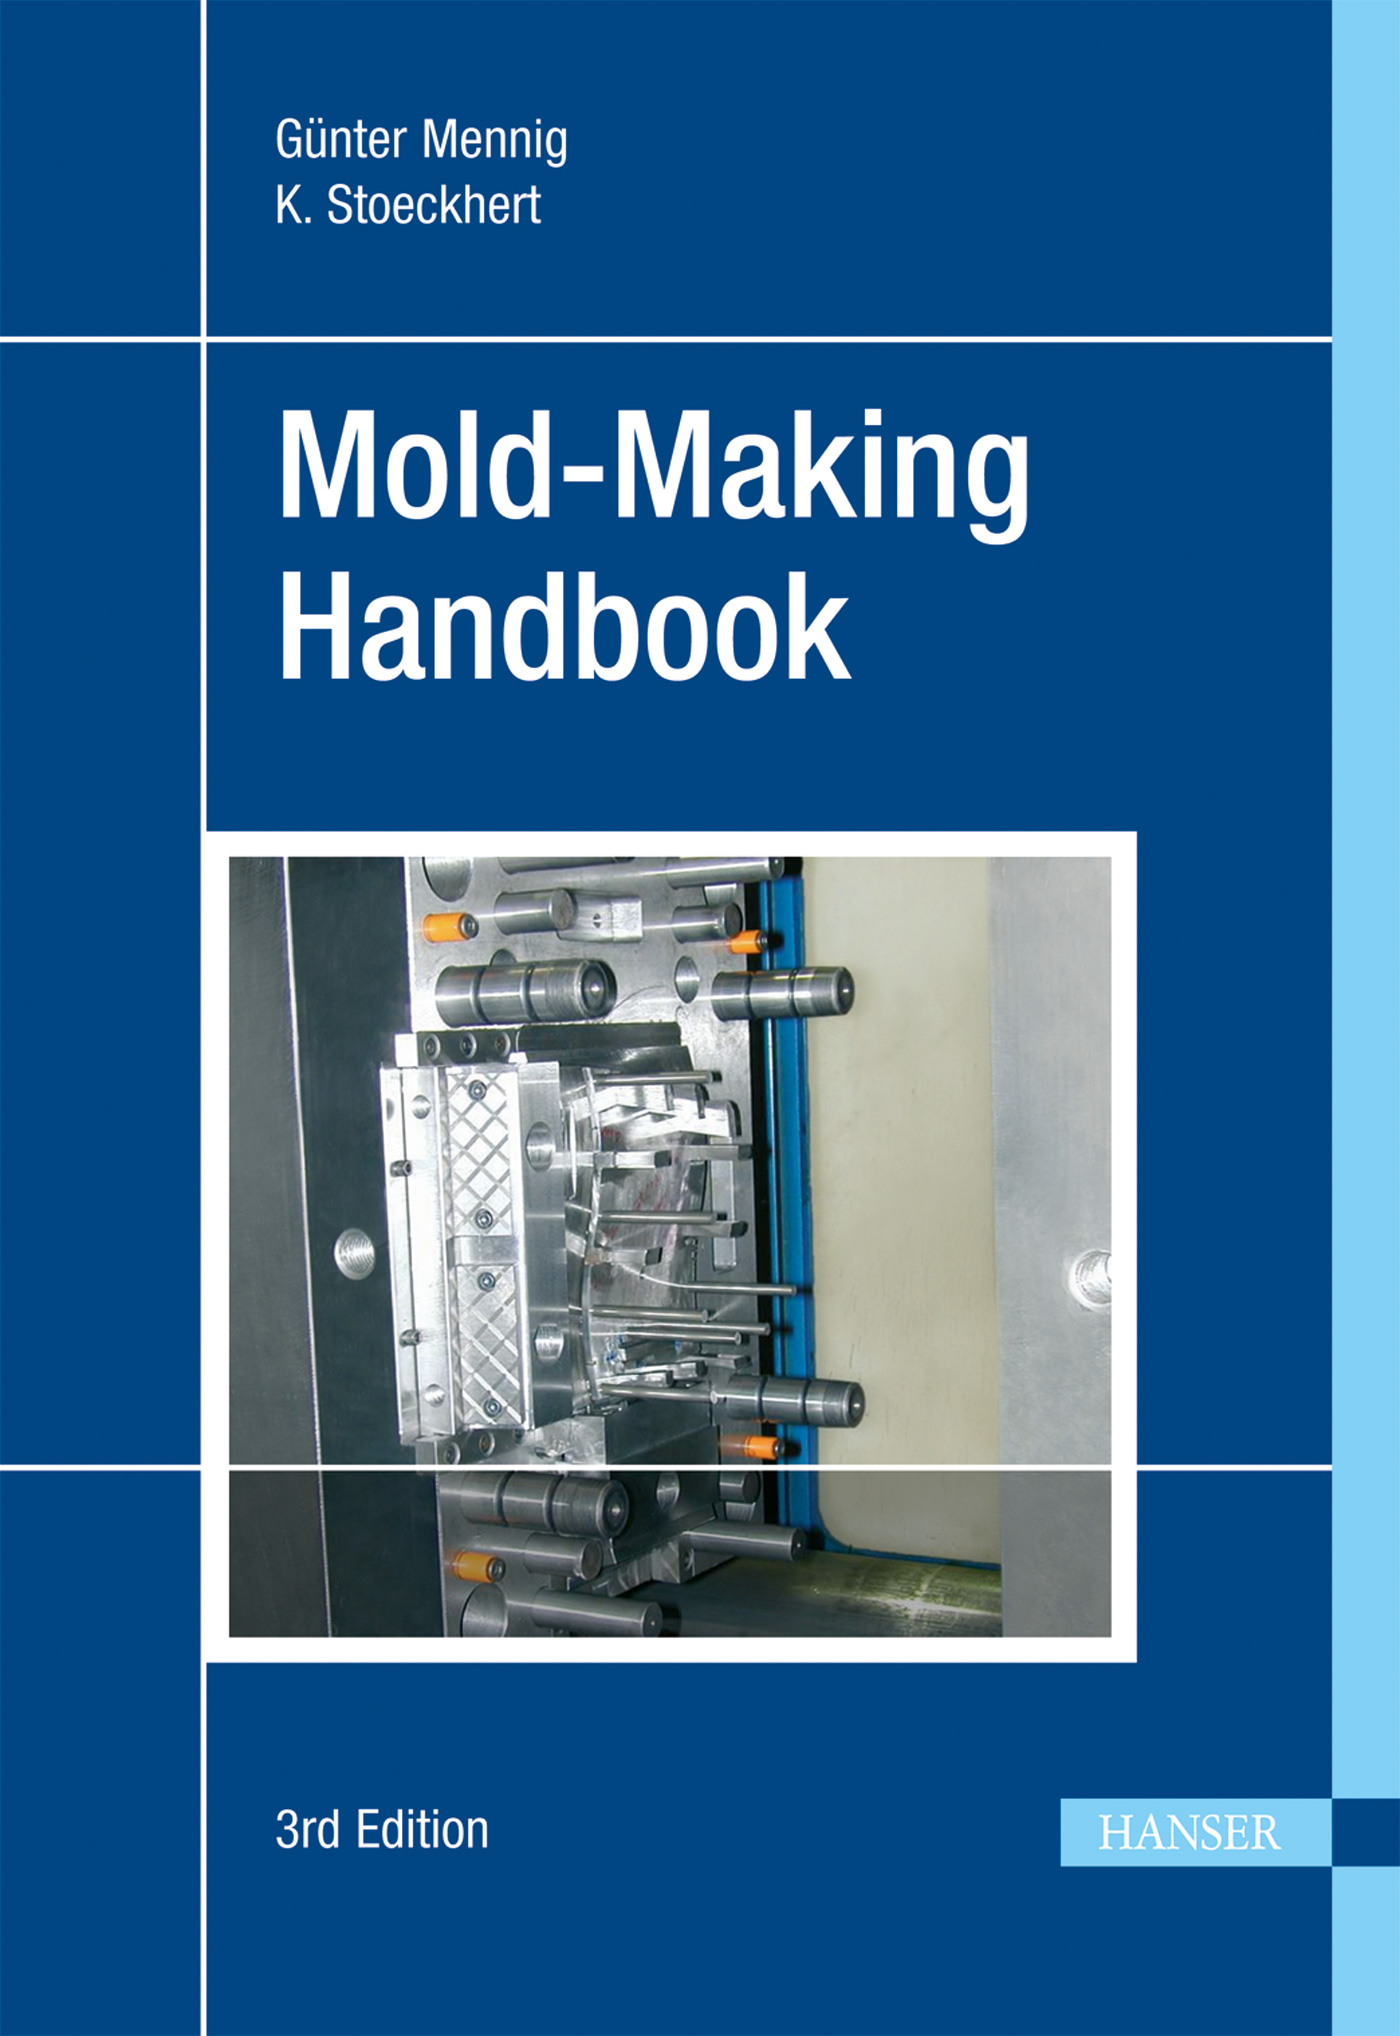 Mold-Making Handbook, 978-1-56990-446-6